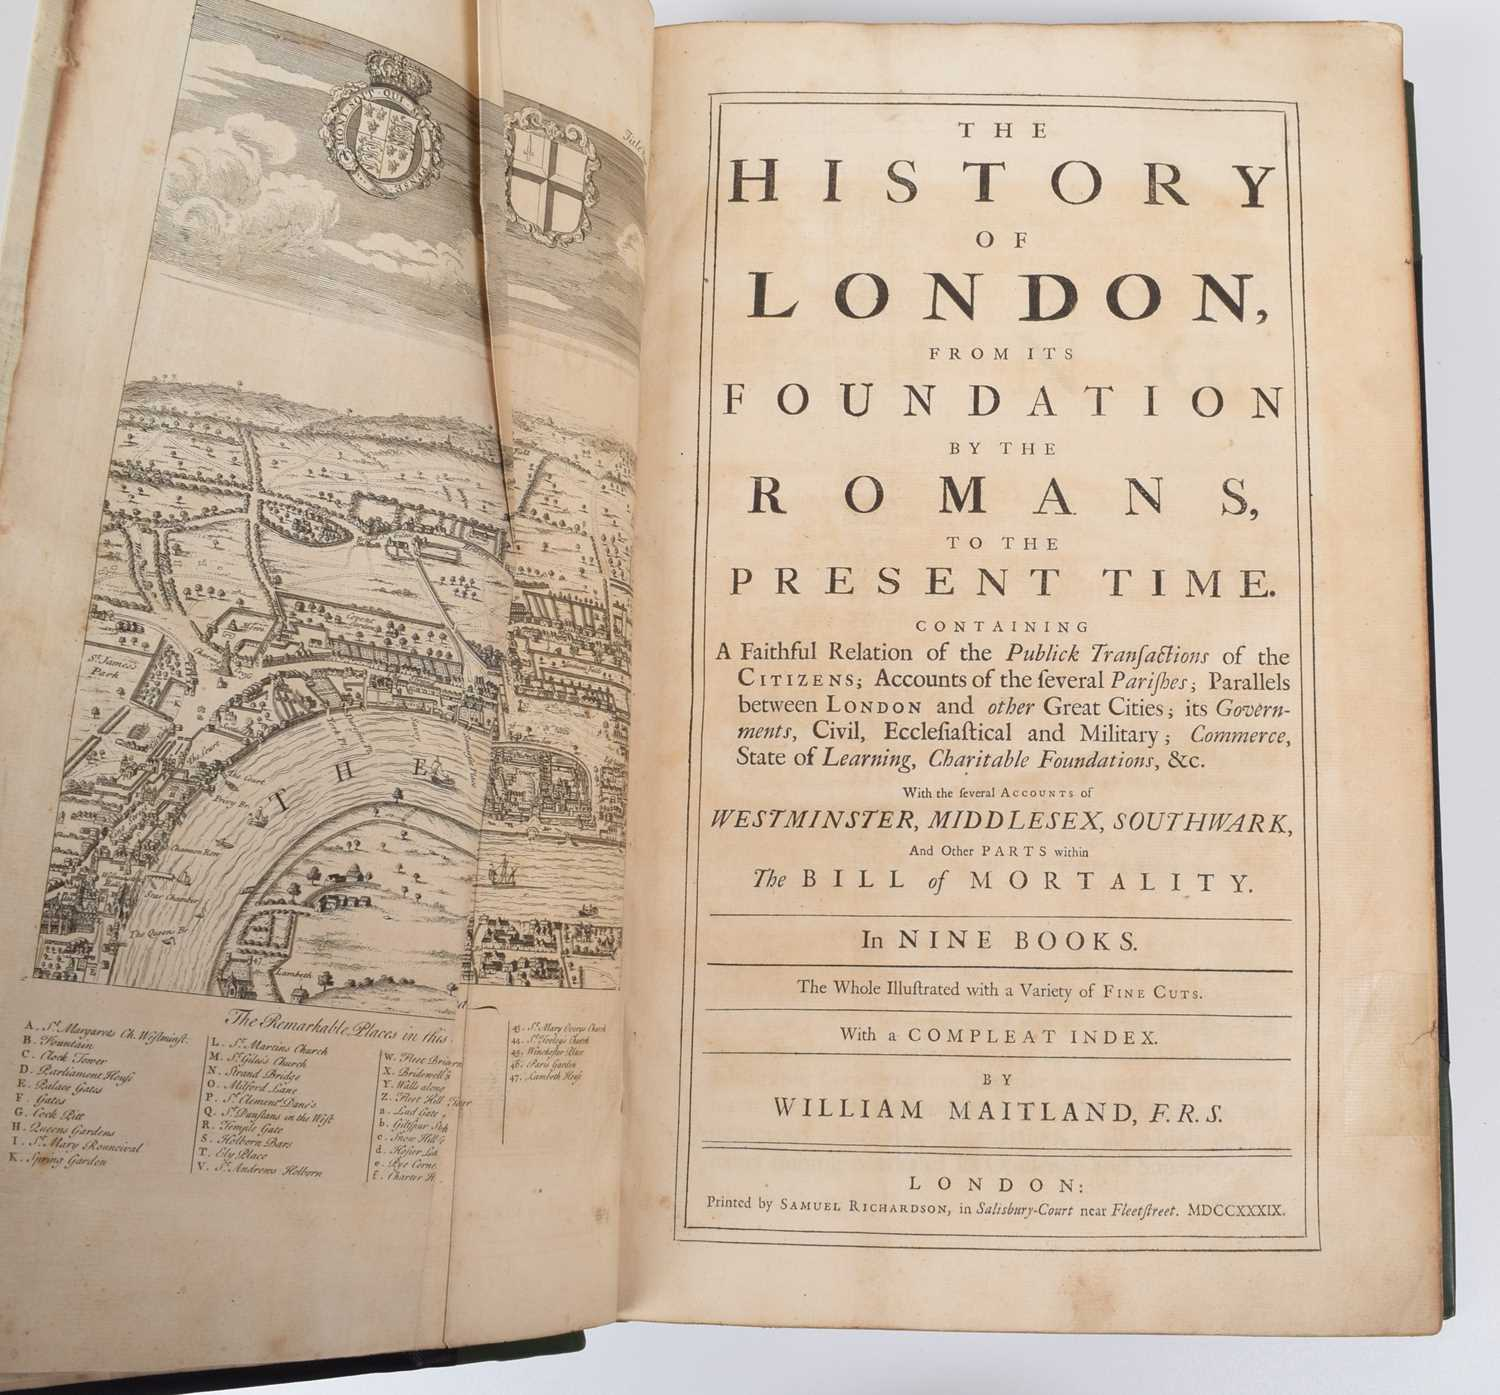 Lot 47-Maitland, W., History of London from its Foundation by Romans.